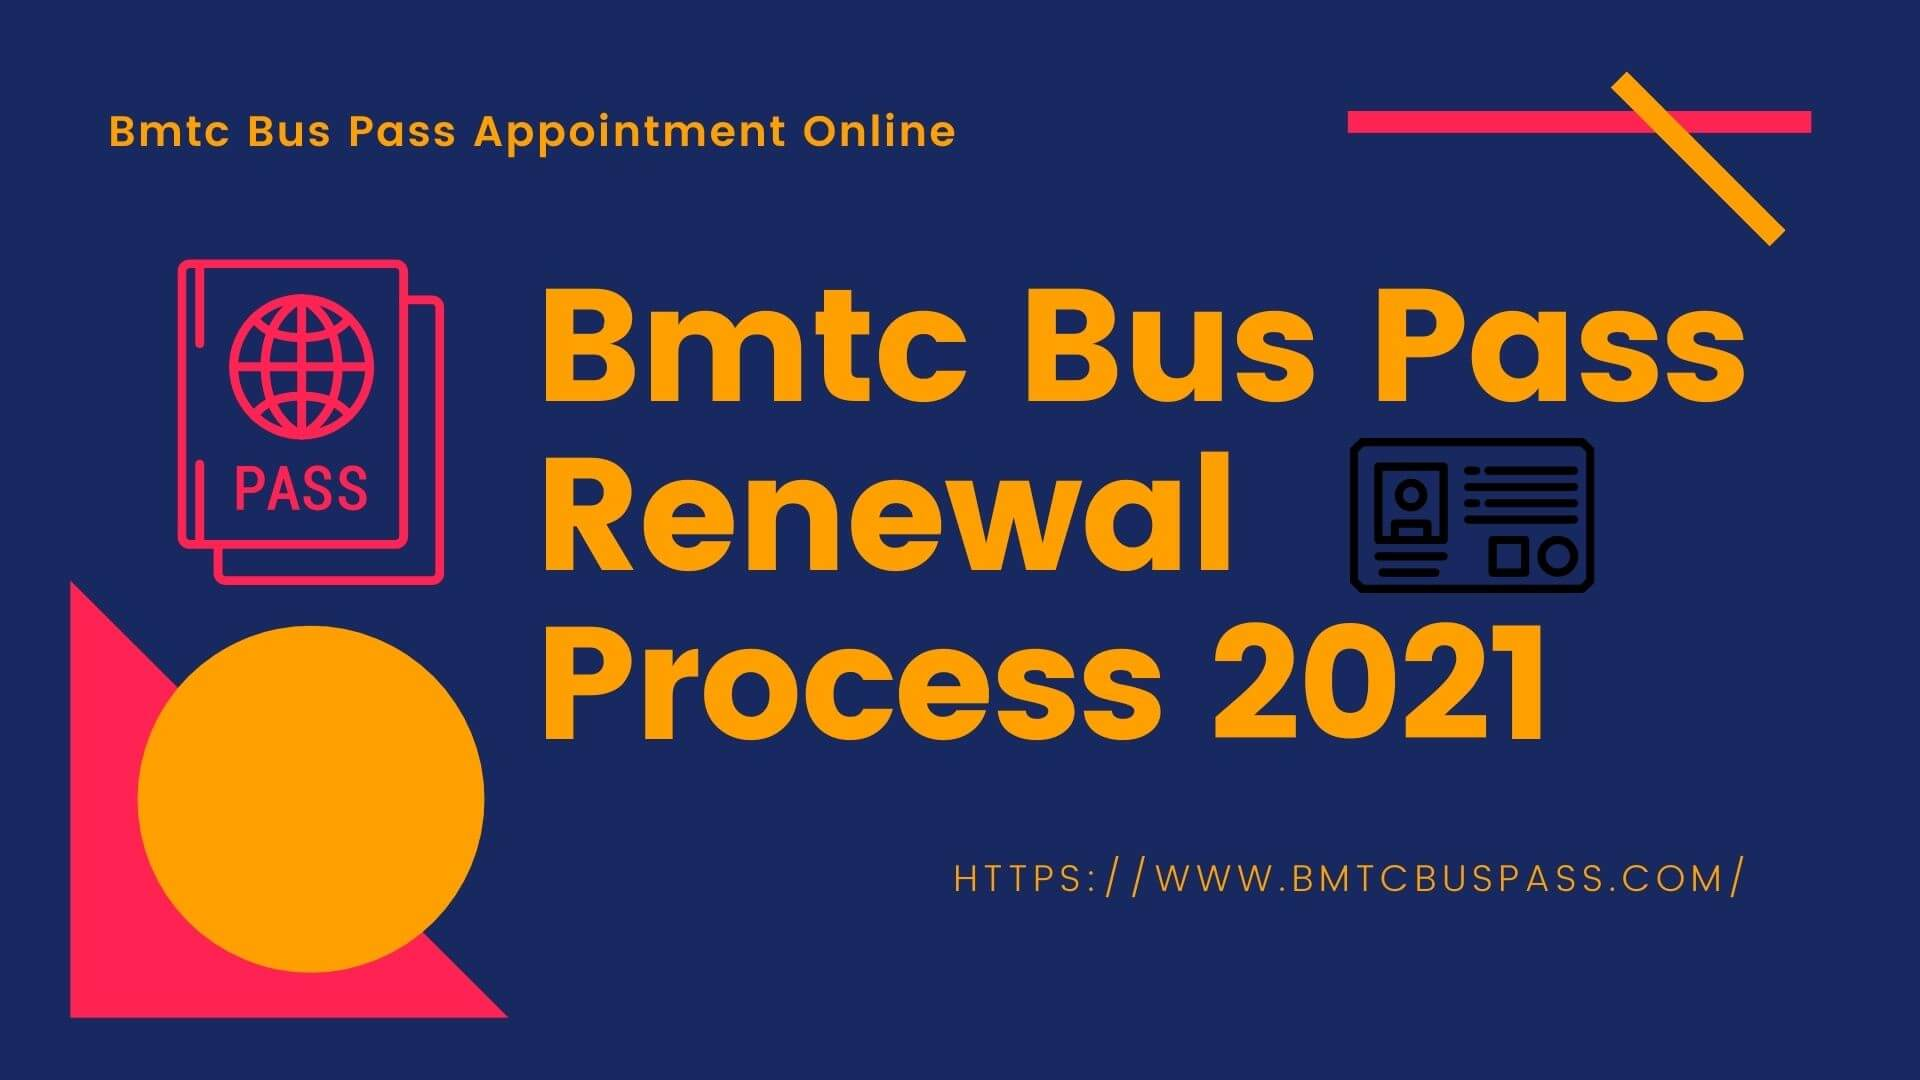 Bmtc Bus Pass Renewal